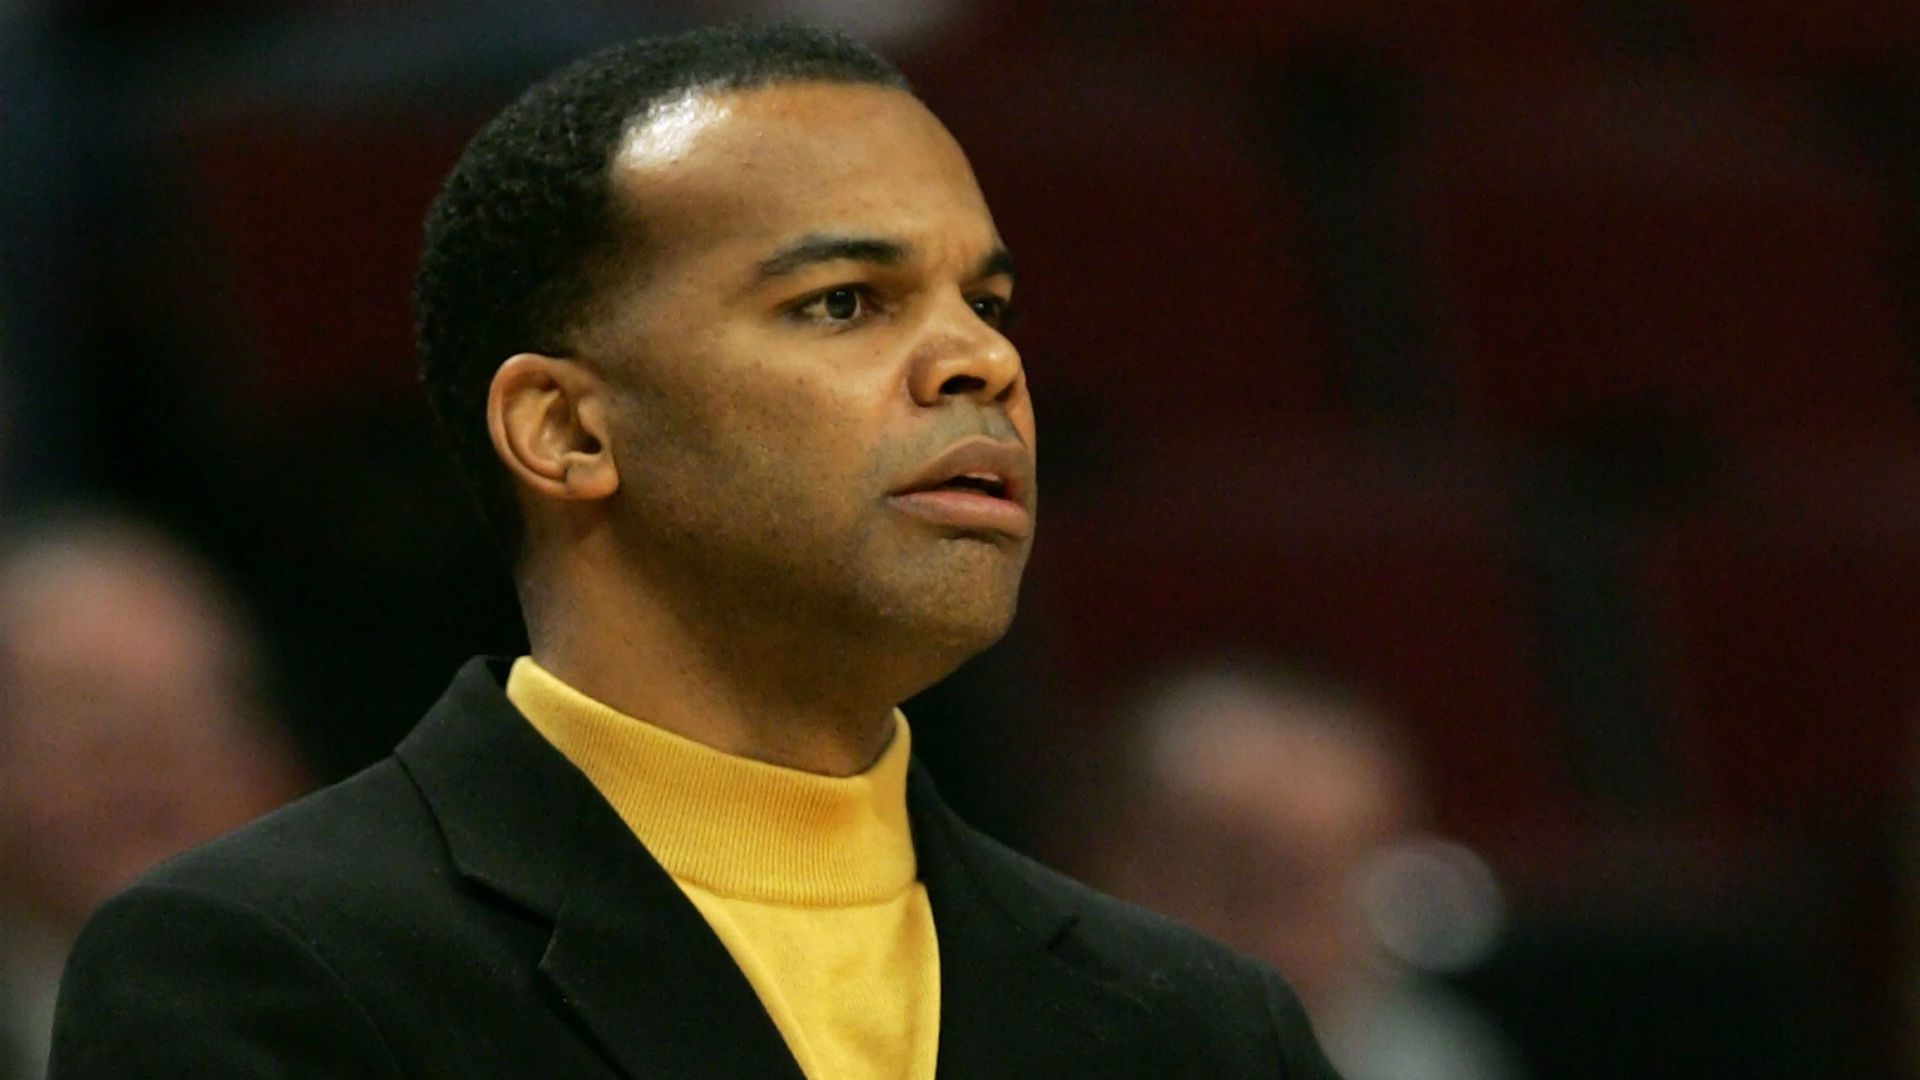 Amaker-Tommy-062315-USNews-Getty-FTR